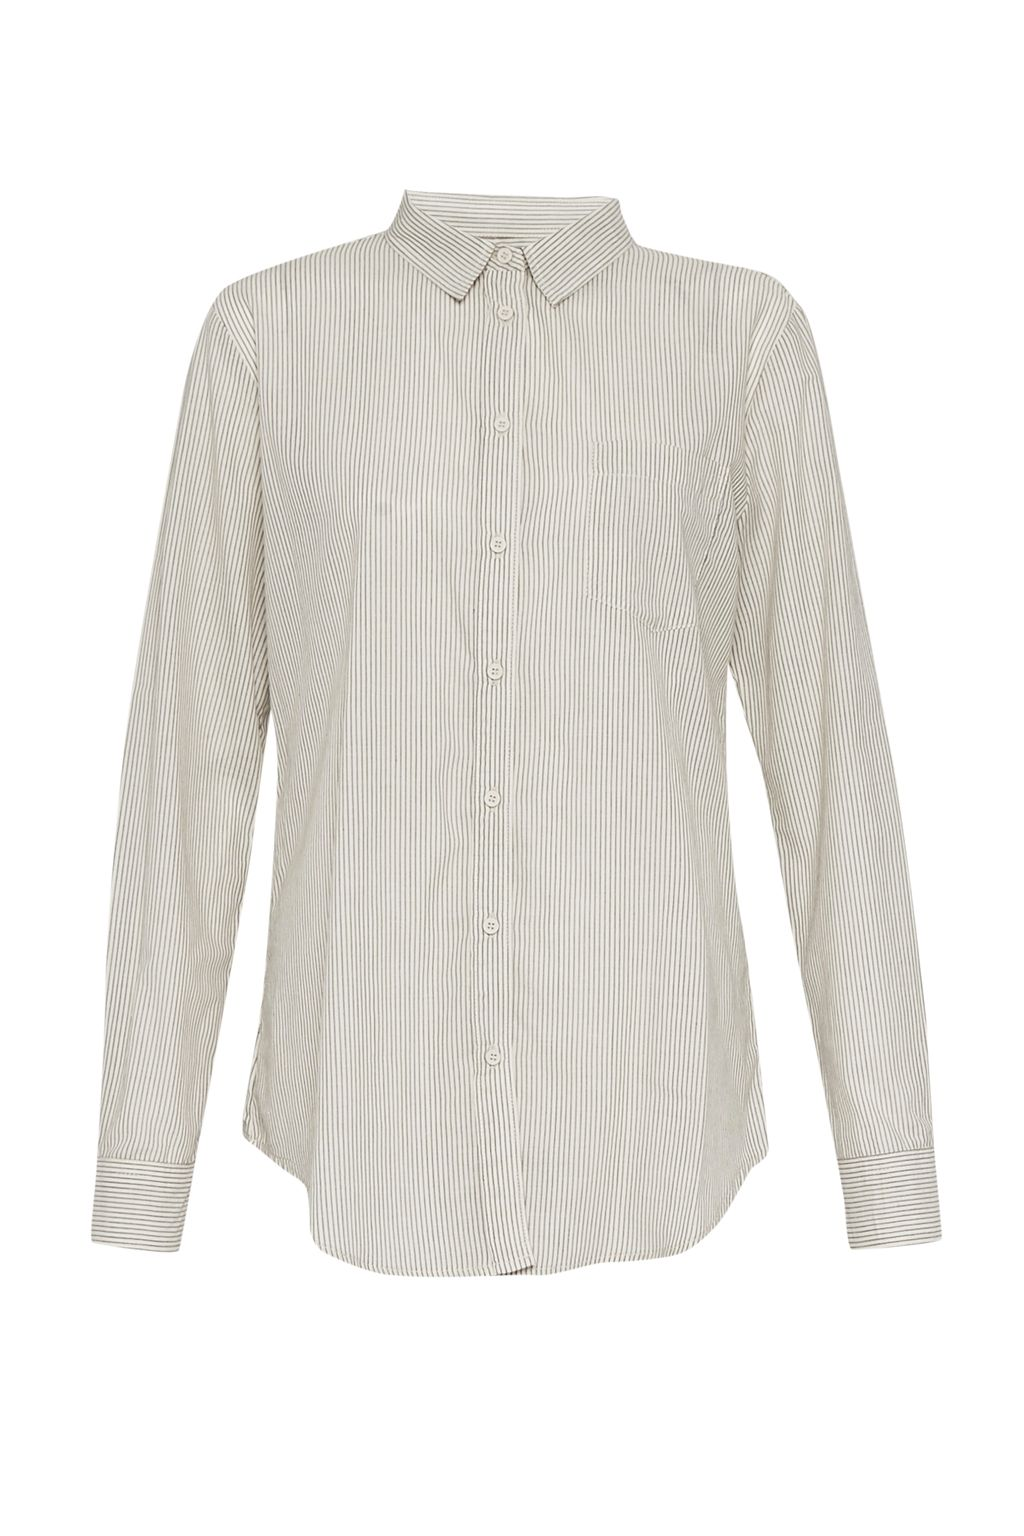 French Connection Winona Cotton Striped Classic Shirt, Dove